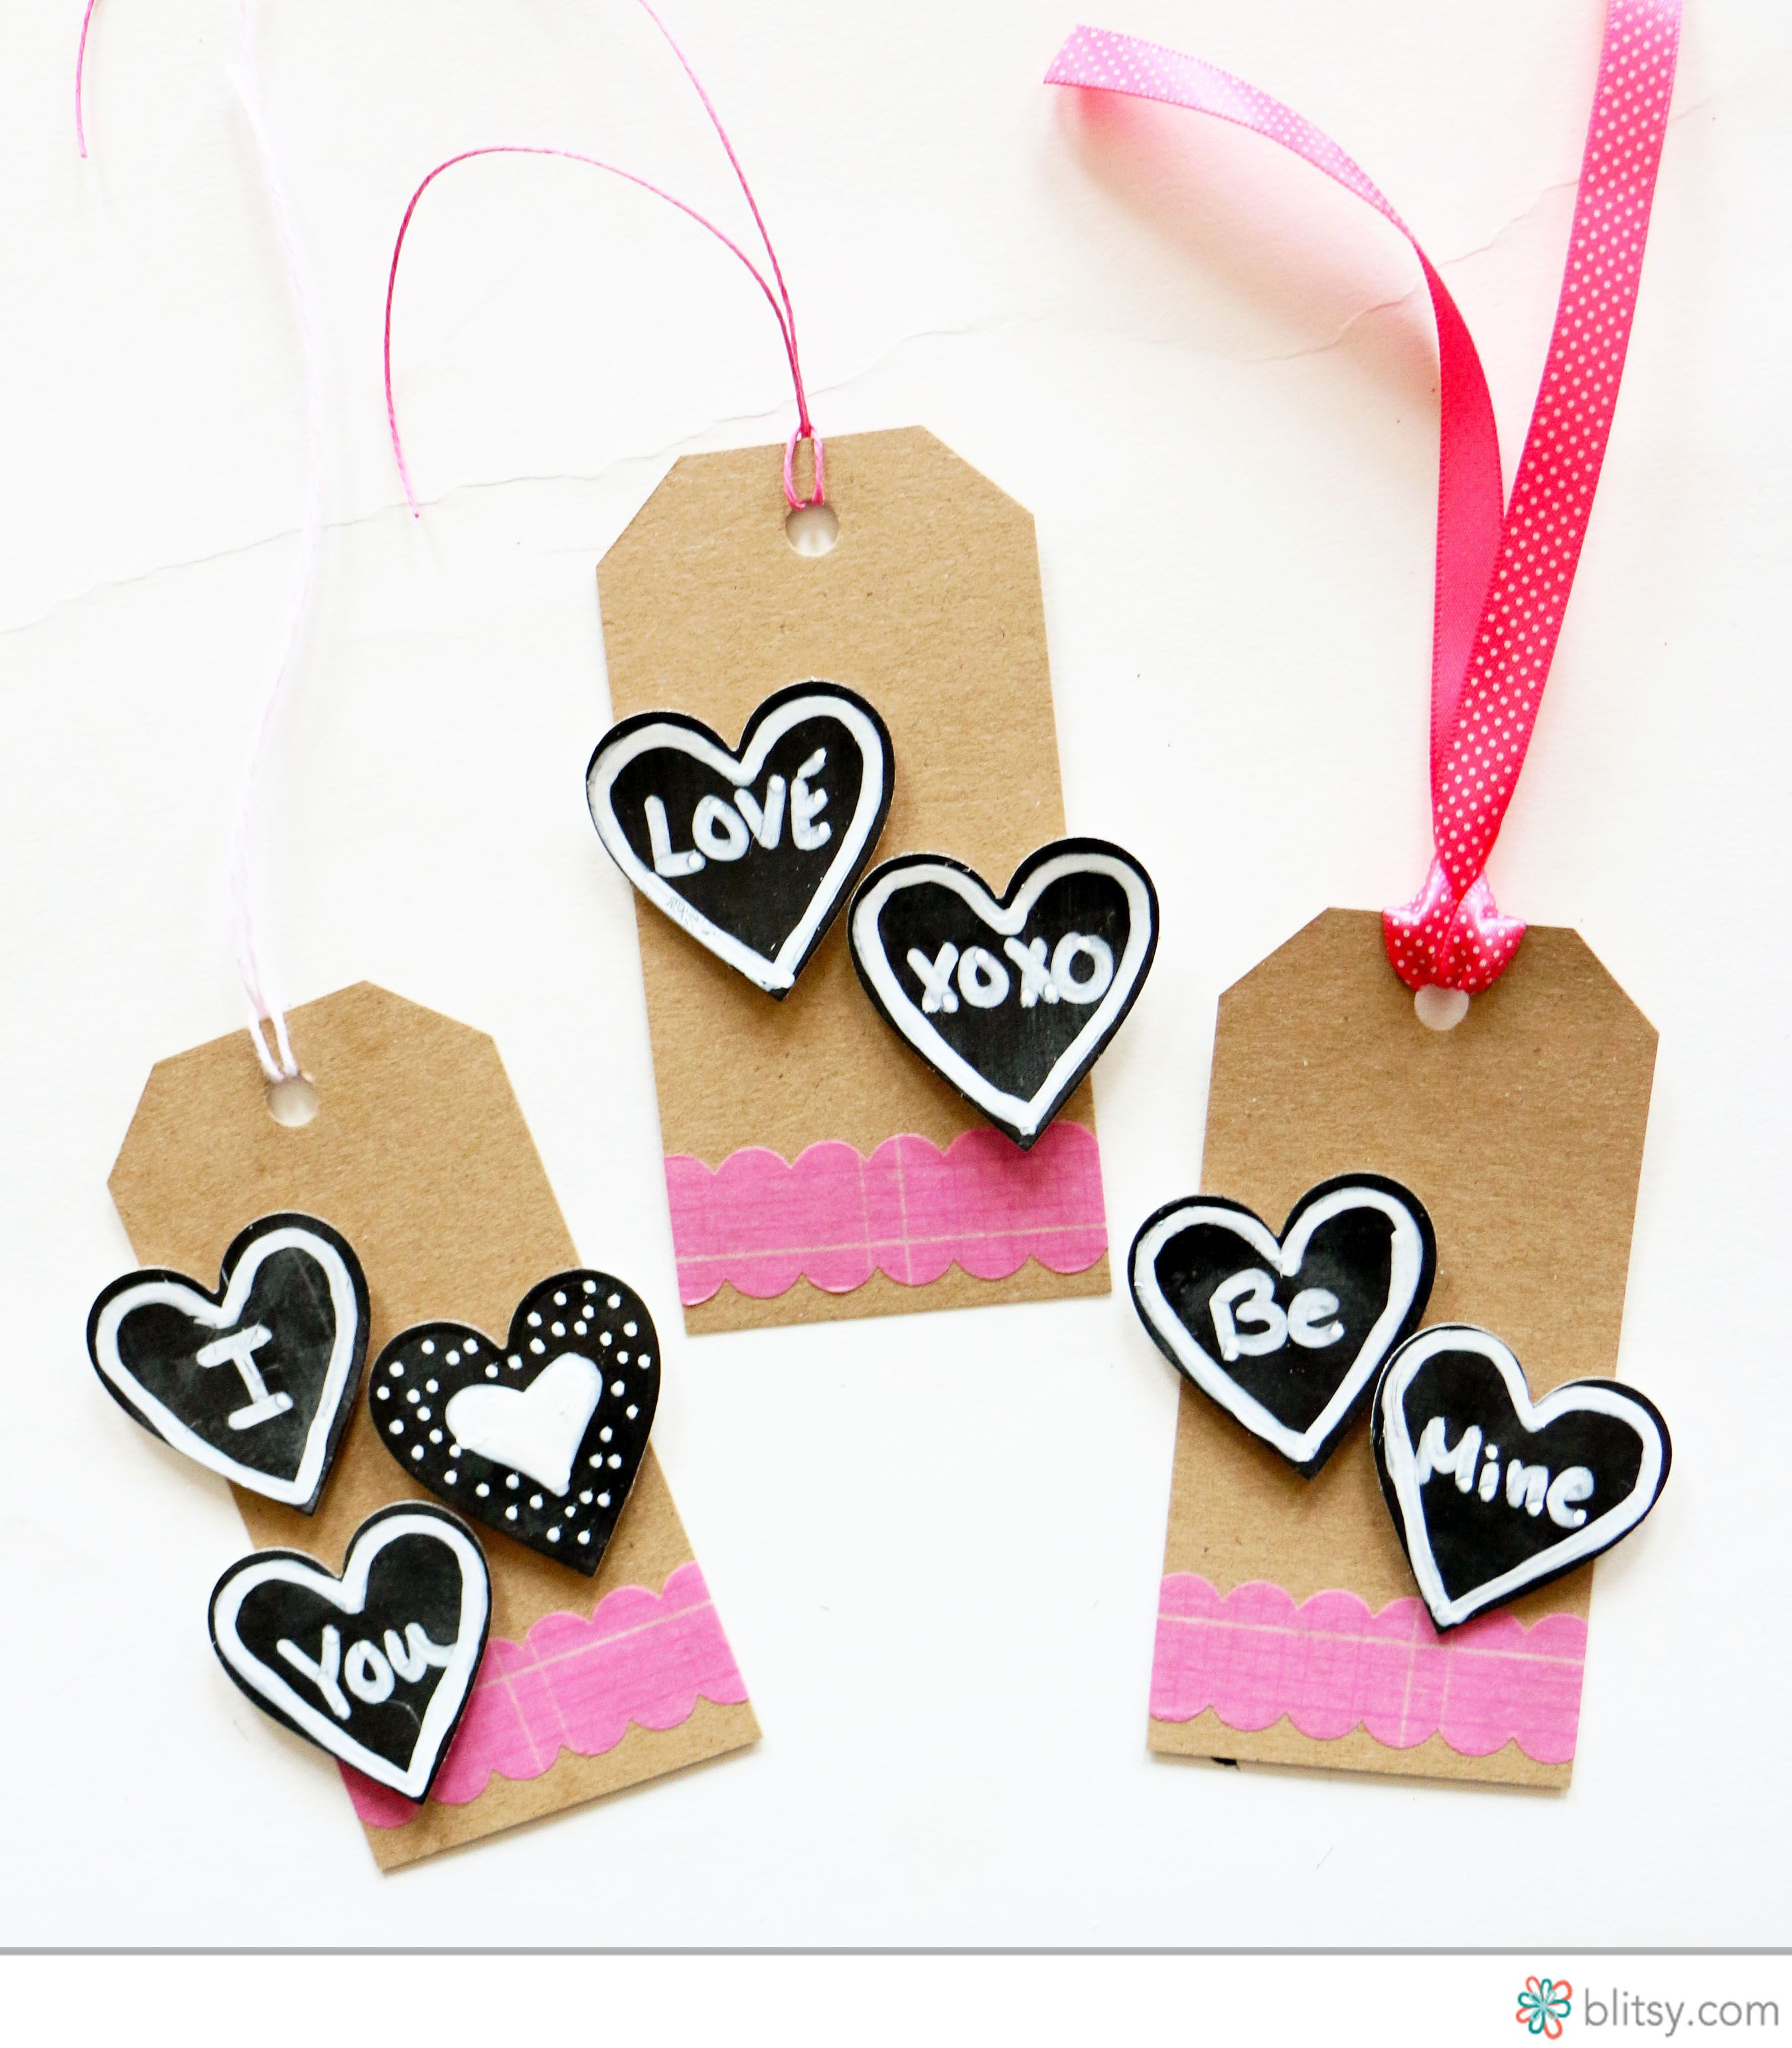 Get ahead of Valentine's Day this year! Show some love with these Chalkboard Heart Valentine's Day Tags! With some Martha Stewart Chalkboard Paint, you can make your own chalkboard heart tags! blitsy.com